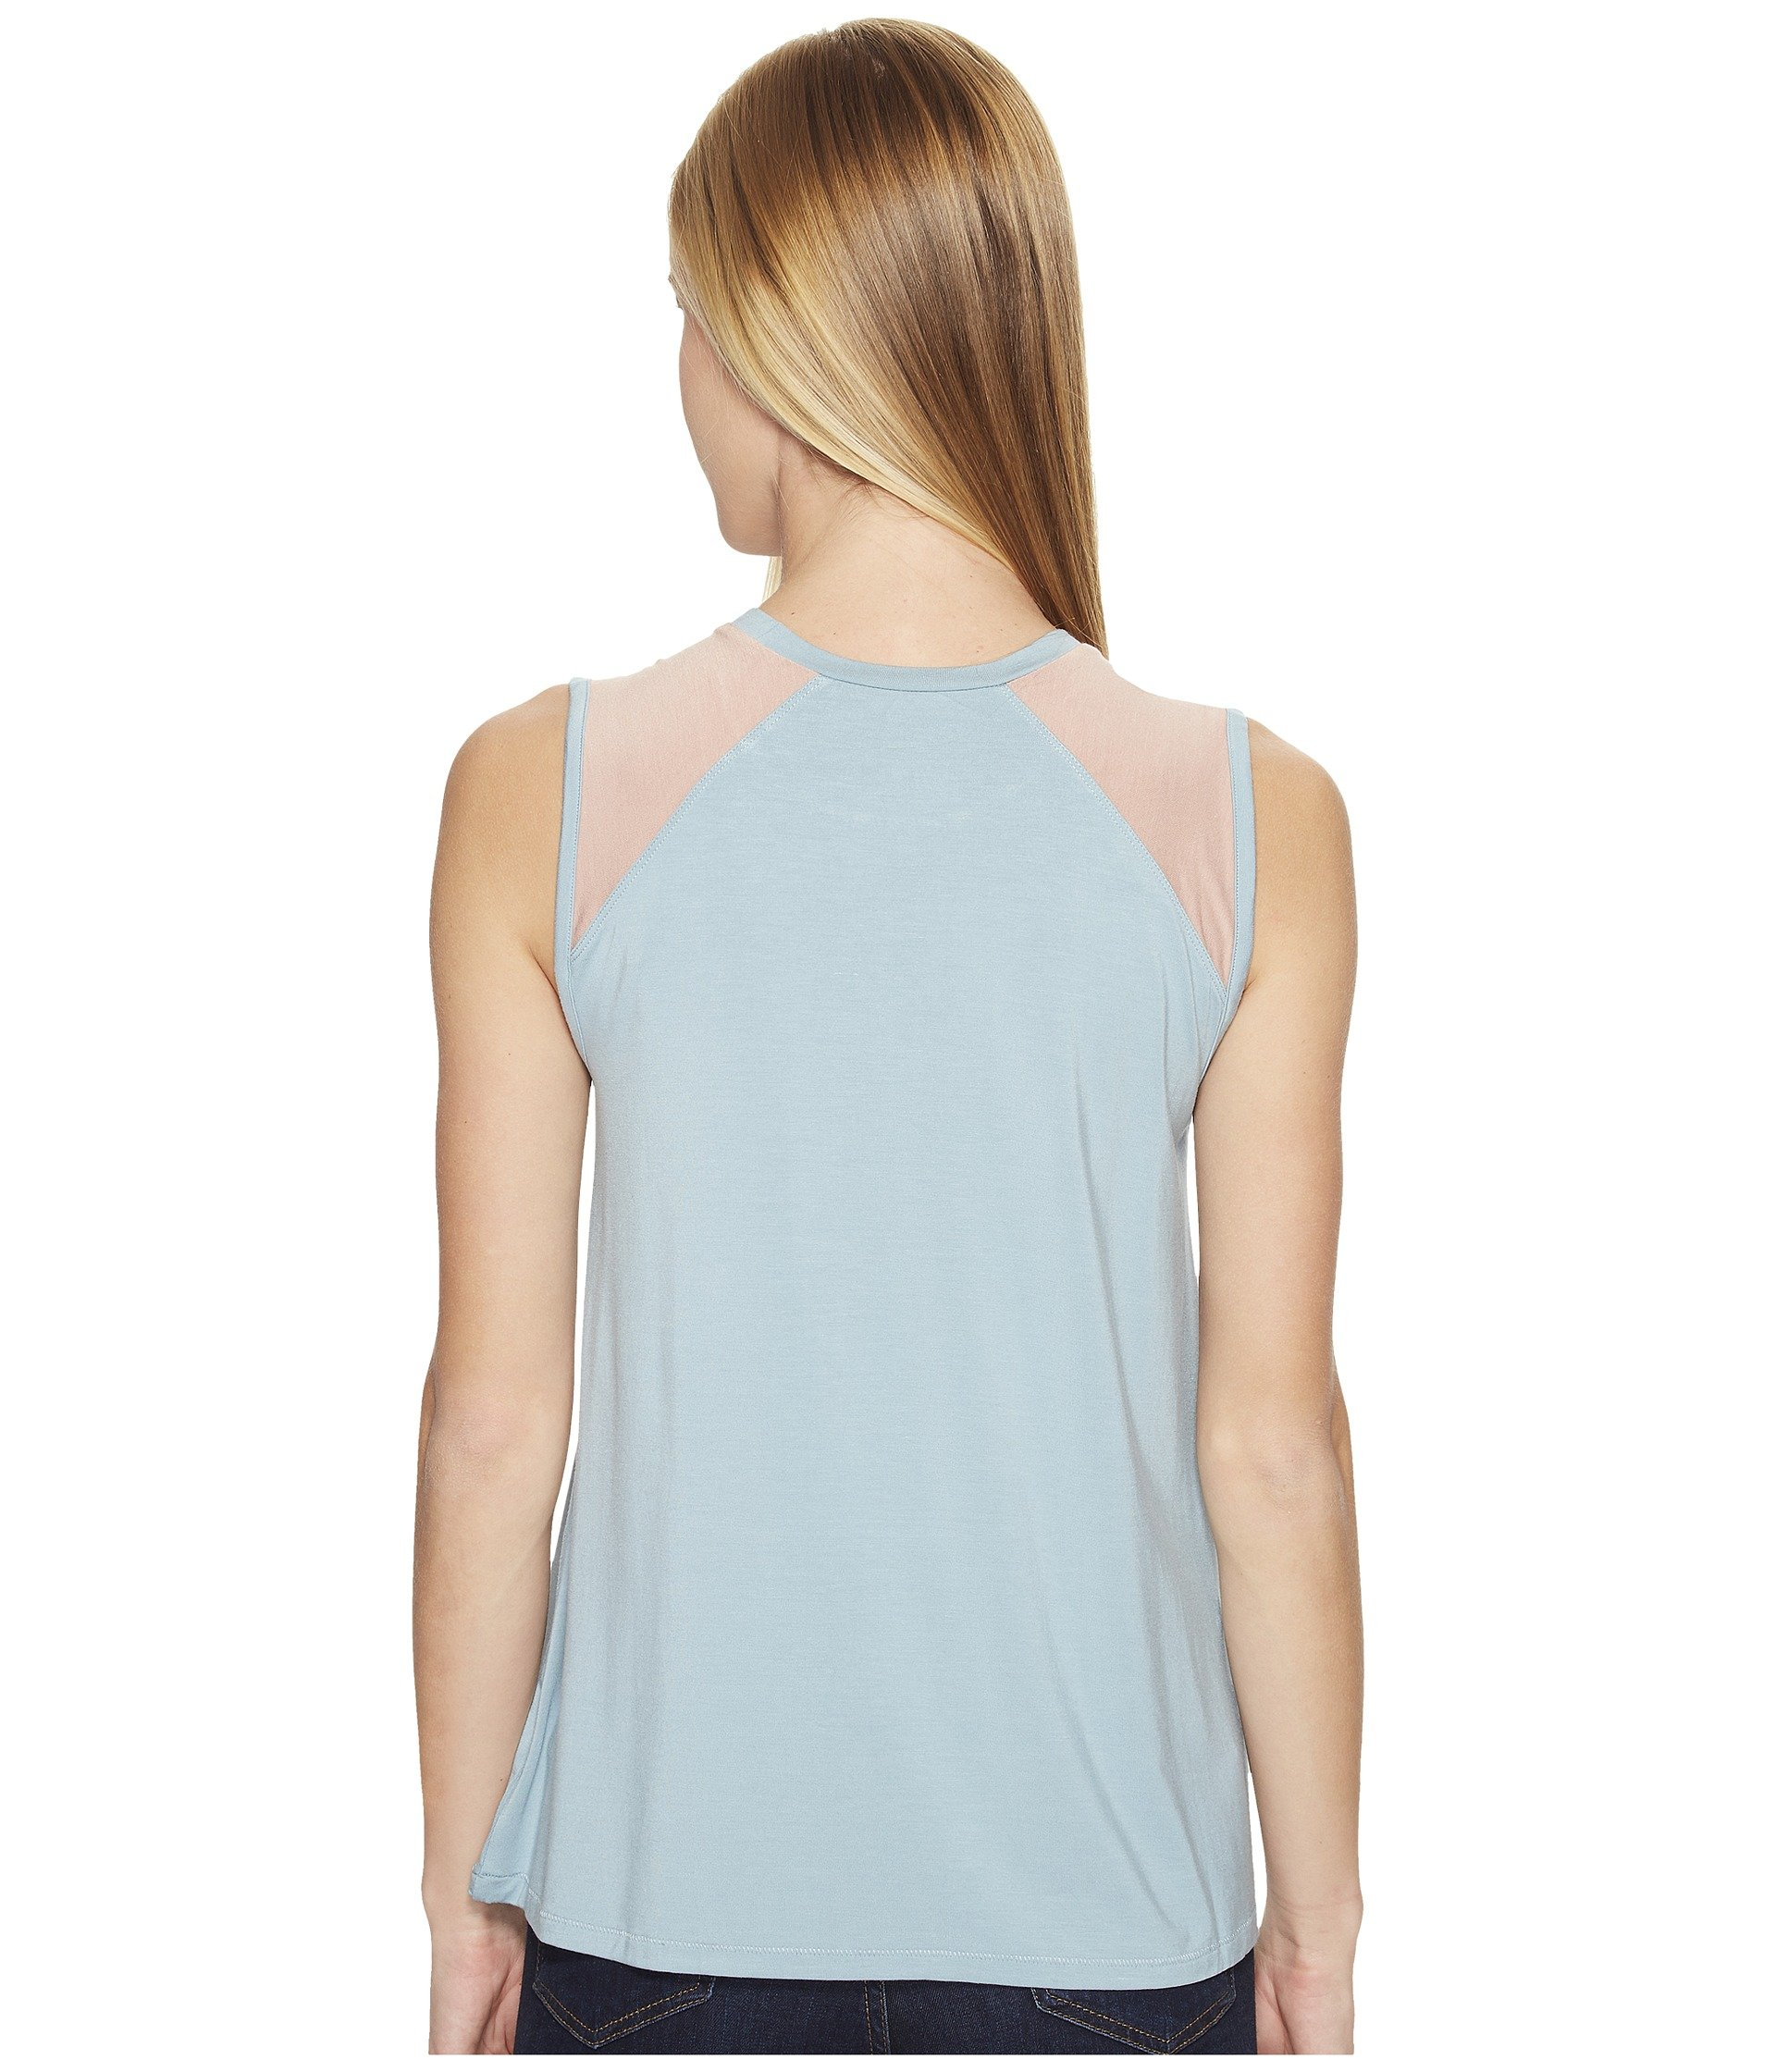 united by blue champlain tank top at 6pm